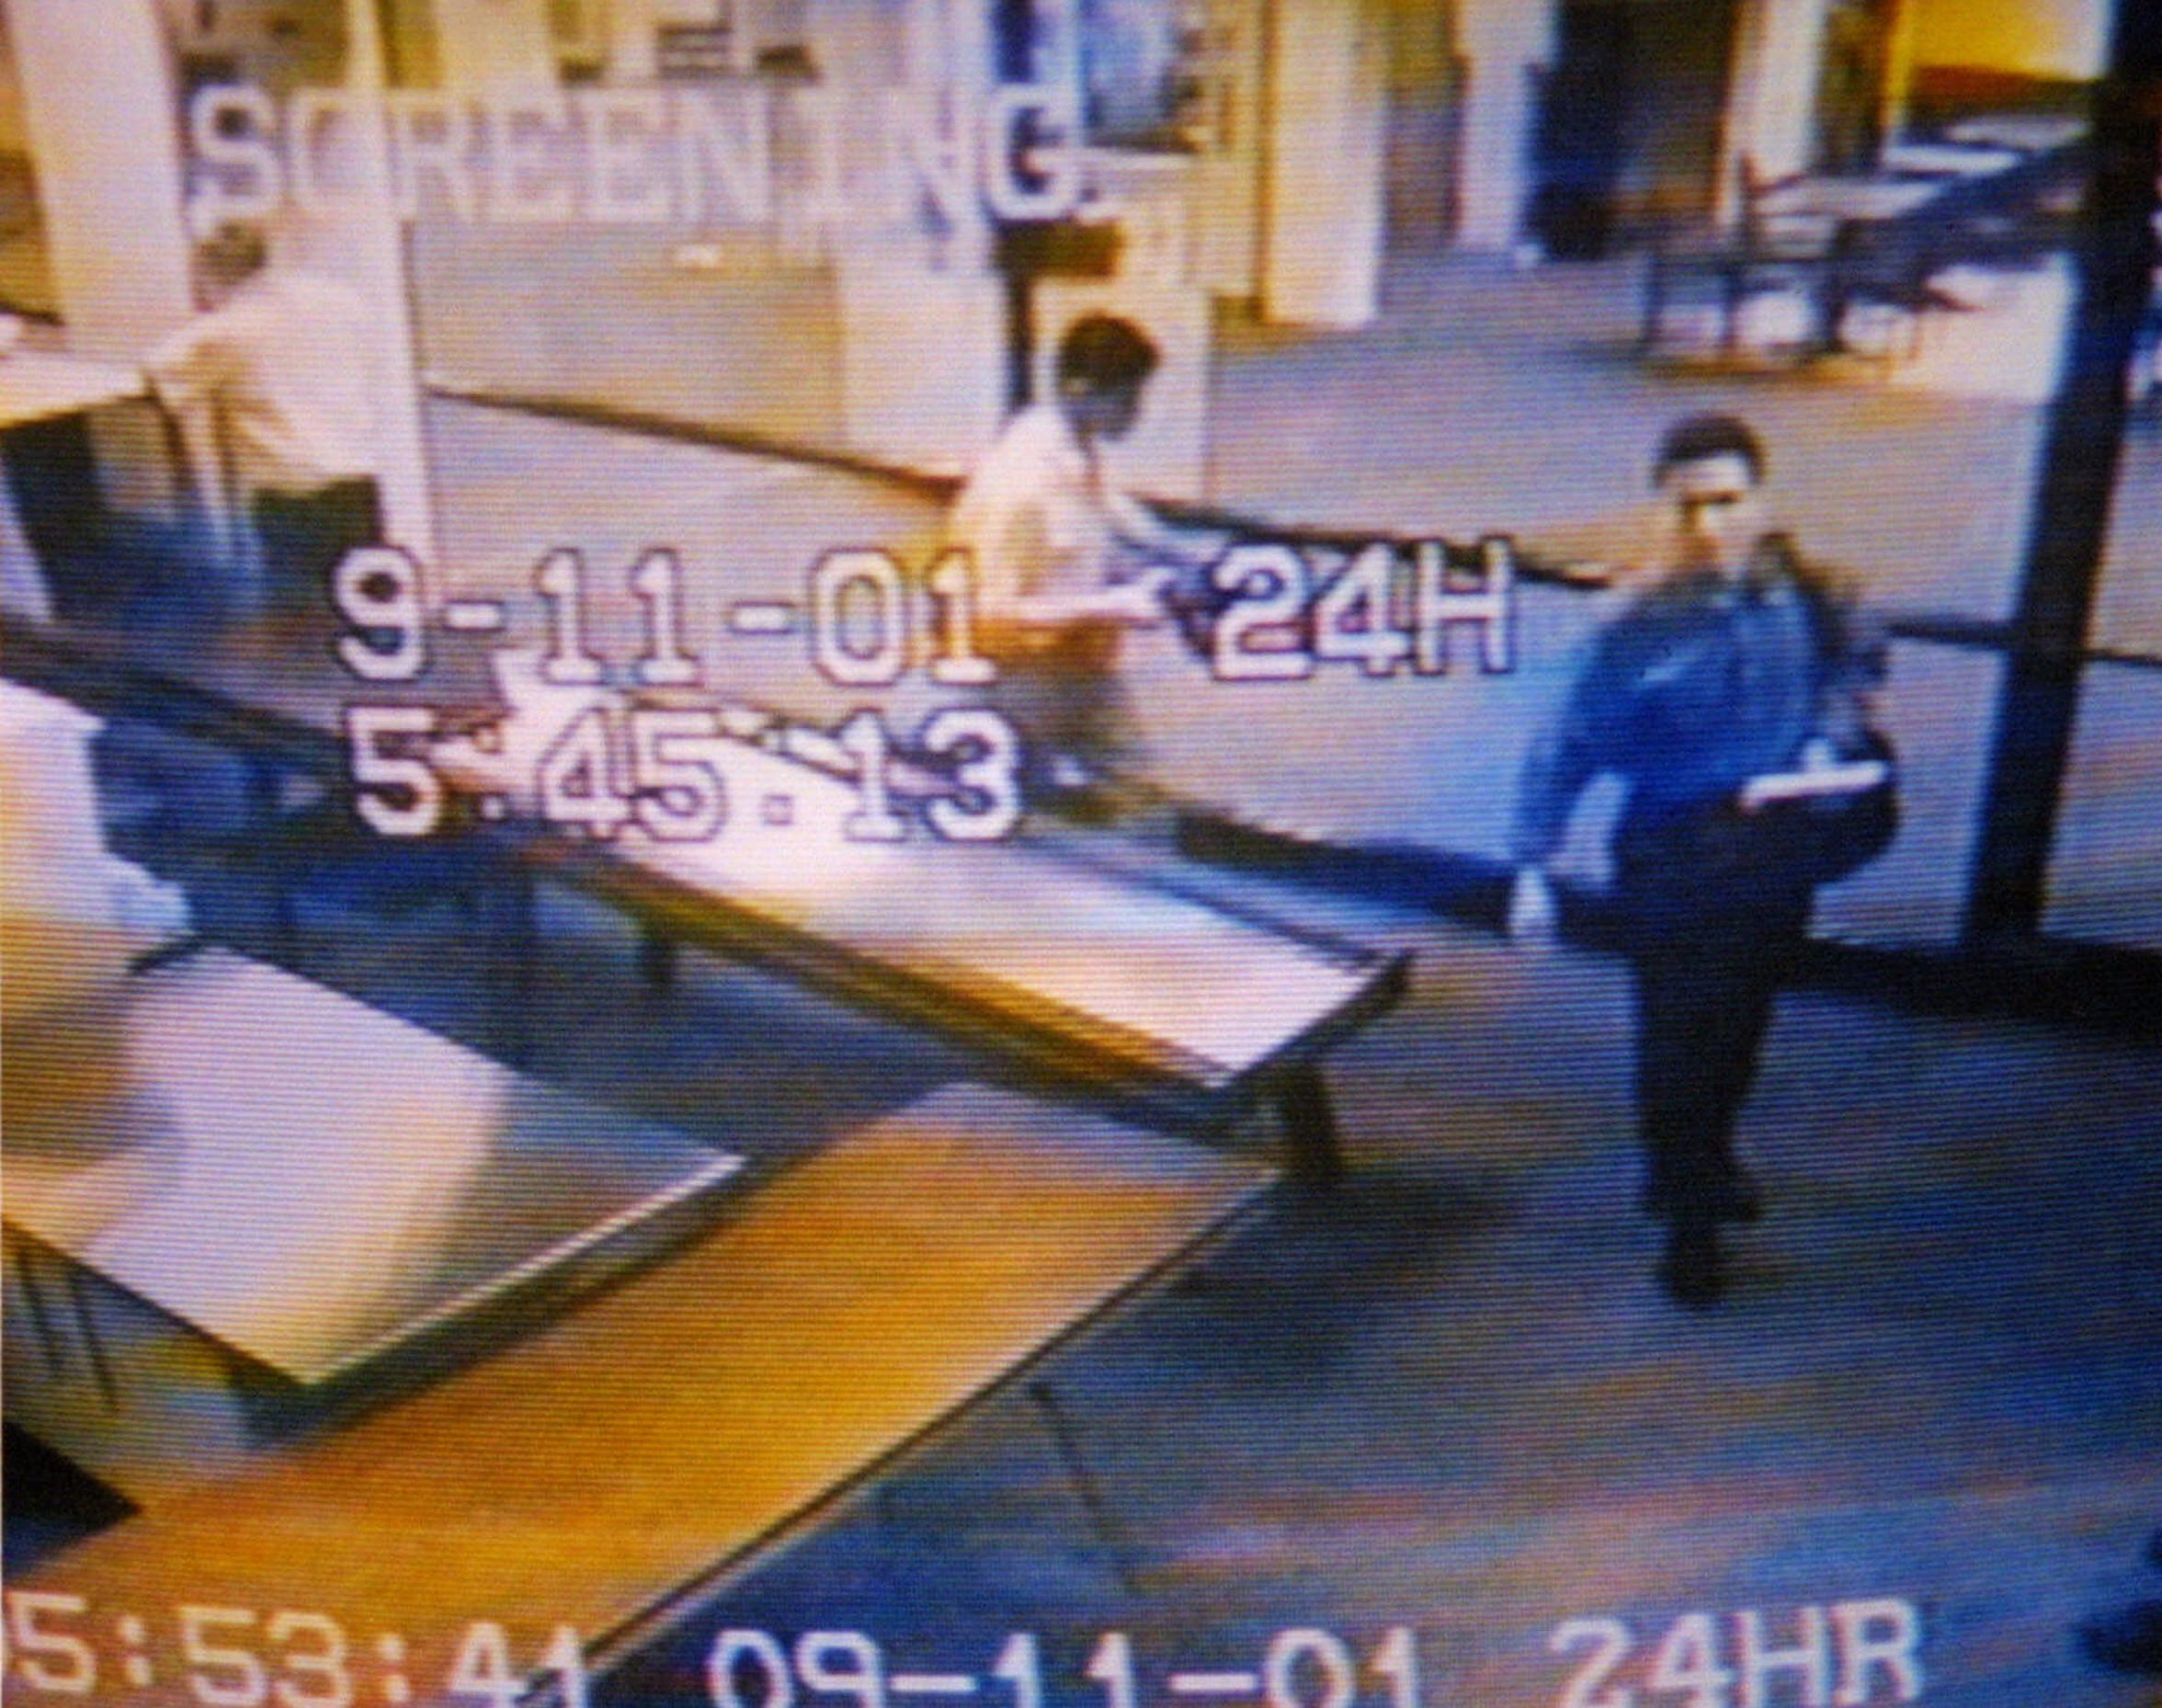 Two men, identified by authorities as suspected hijackers Mohamed Atta, right, and Abdulaziz Alomari, center, pass through airport security, Tuesday, Sept. 11, 2001 at Portland International Jetport in this photo from the airport surveillance tape released Wednesday, Sept. 19, 2001. Authorities say the two men took a commuter flight to Boston before boarding American Airlines Flight 11 which was one of four jetliners hijacked Sept. 11, 2001, and one of two which were crashed into the World Trade Center.